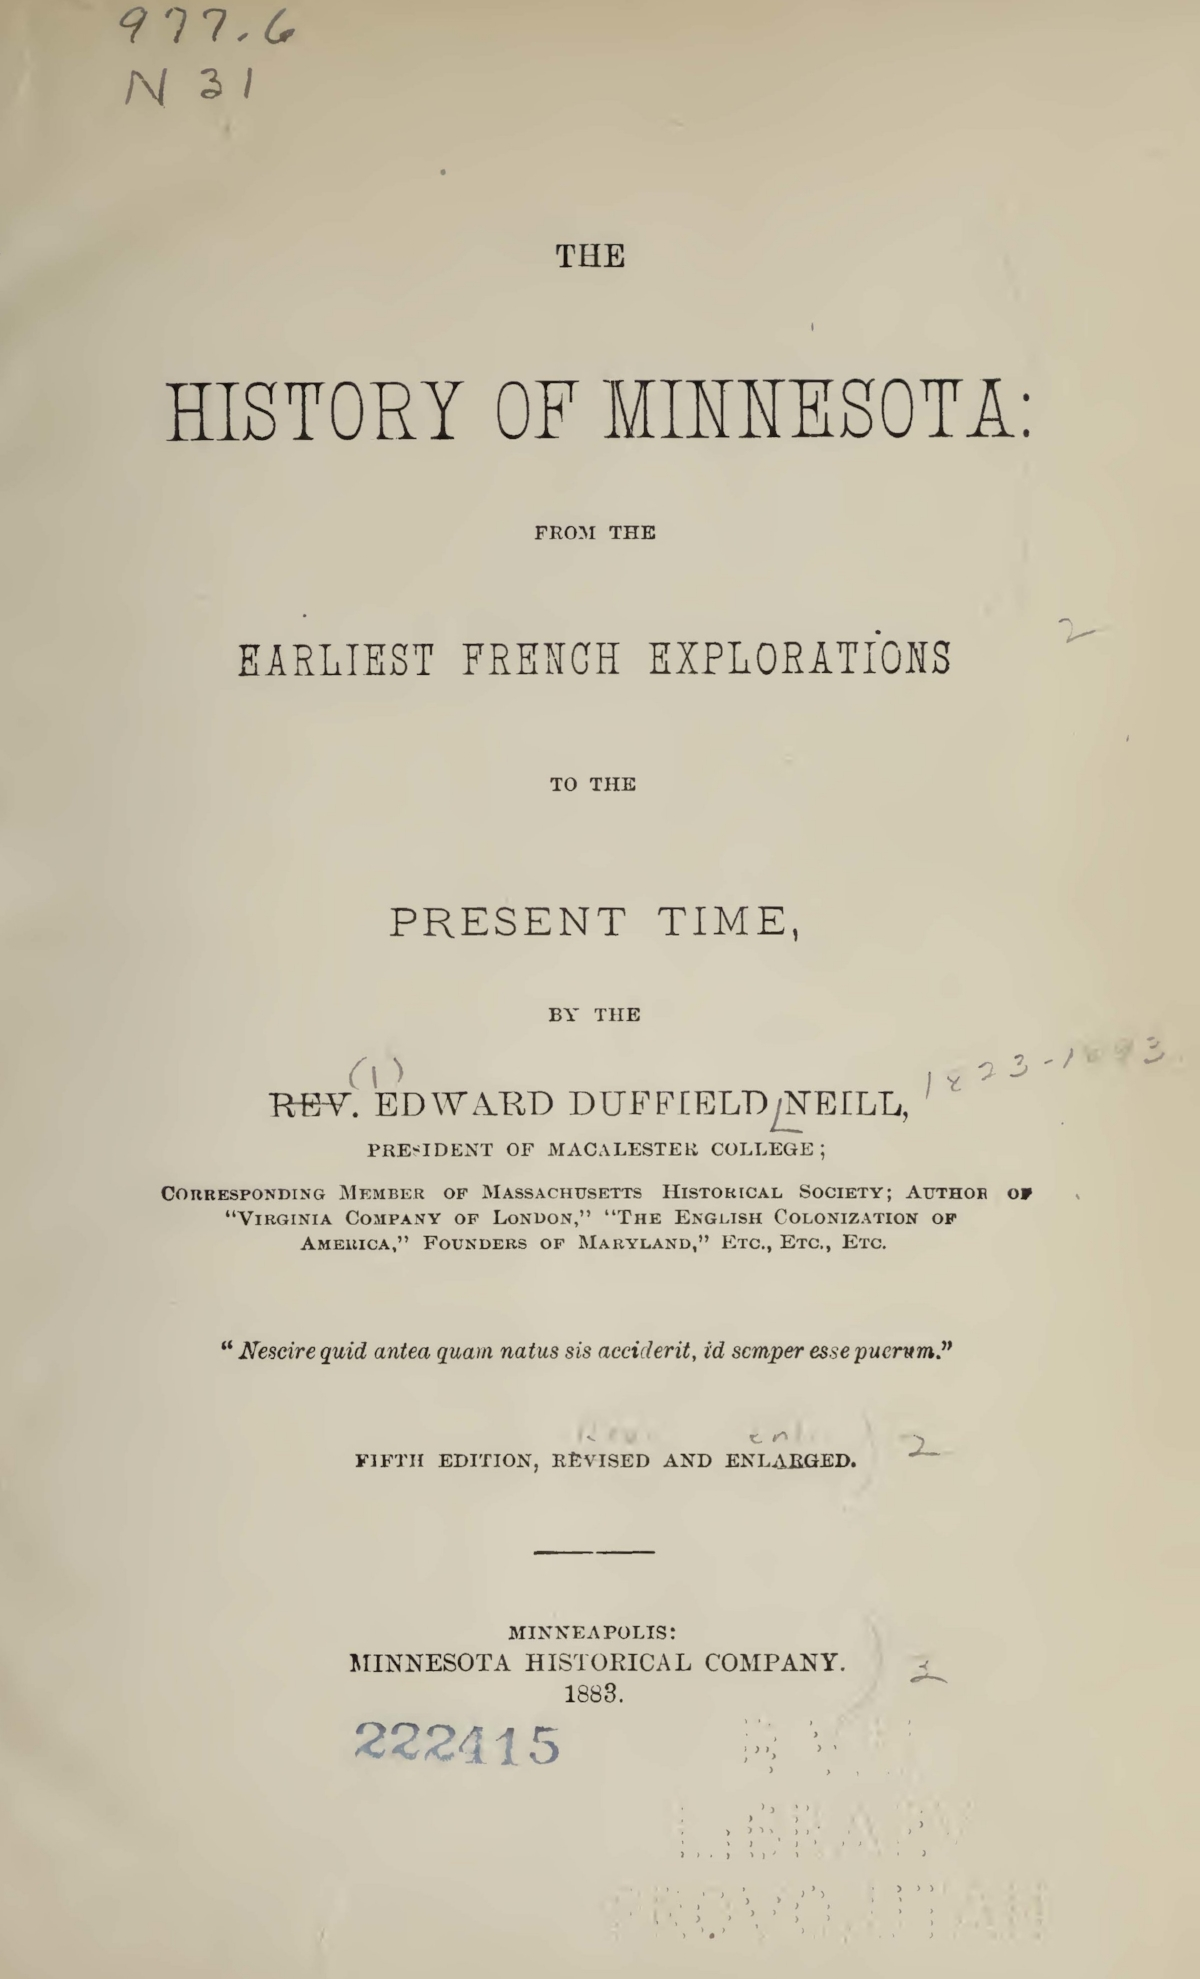 Neill, Edward Duffield, The History of Minnesota Title Page.jpg